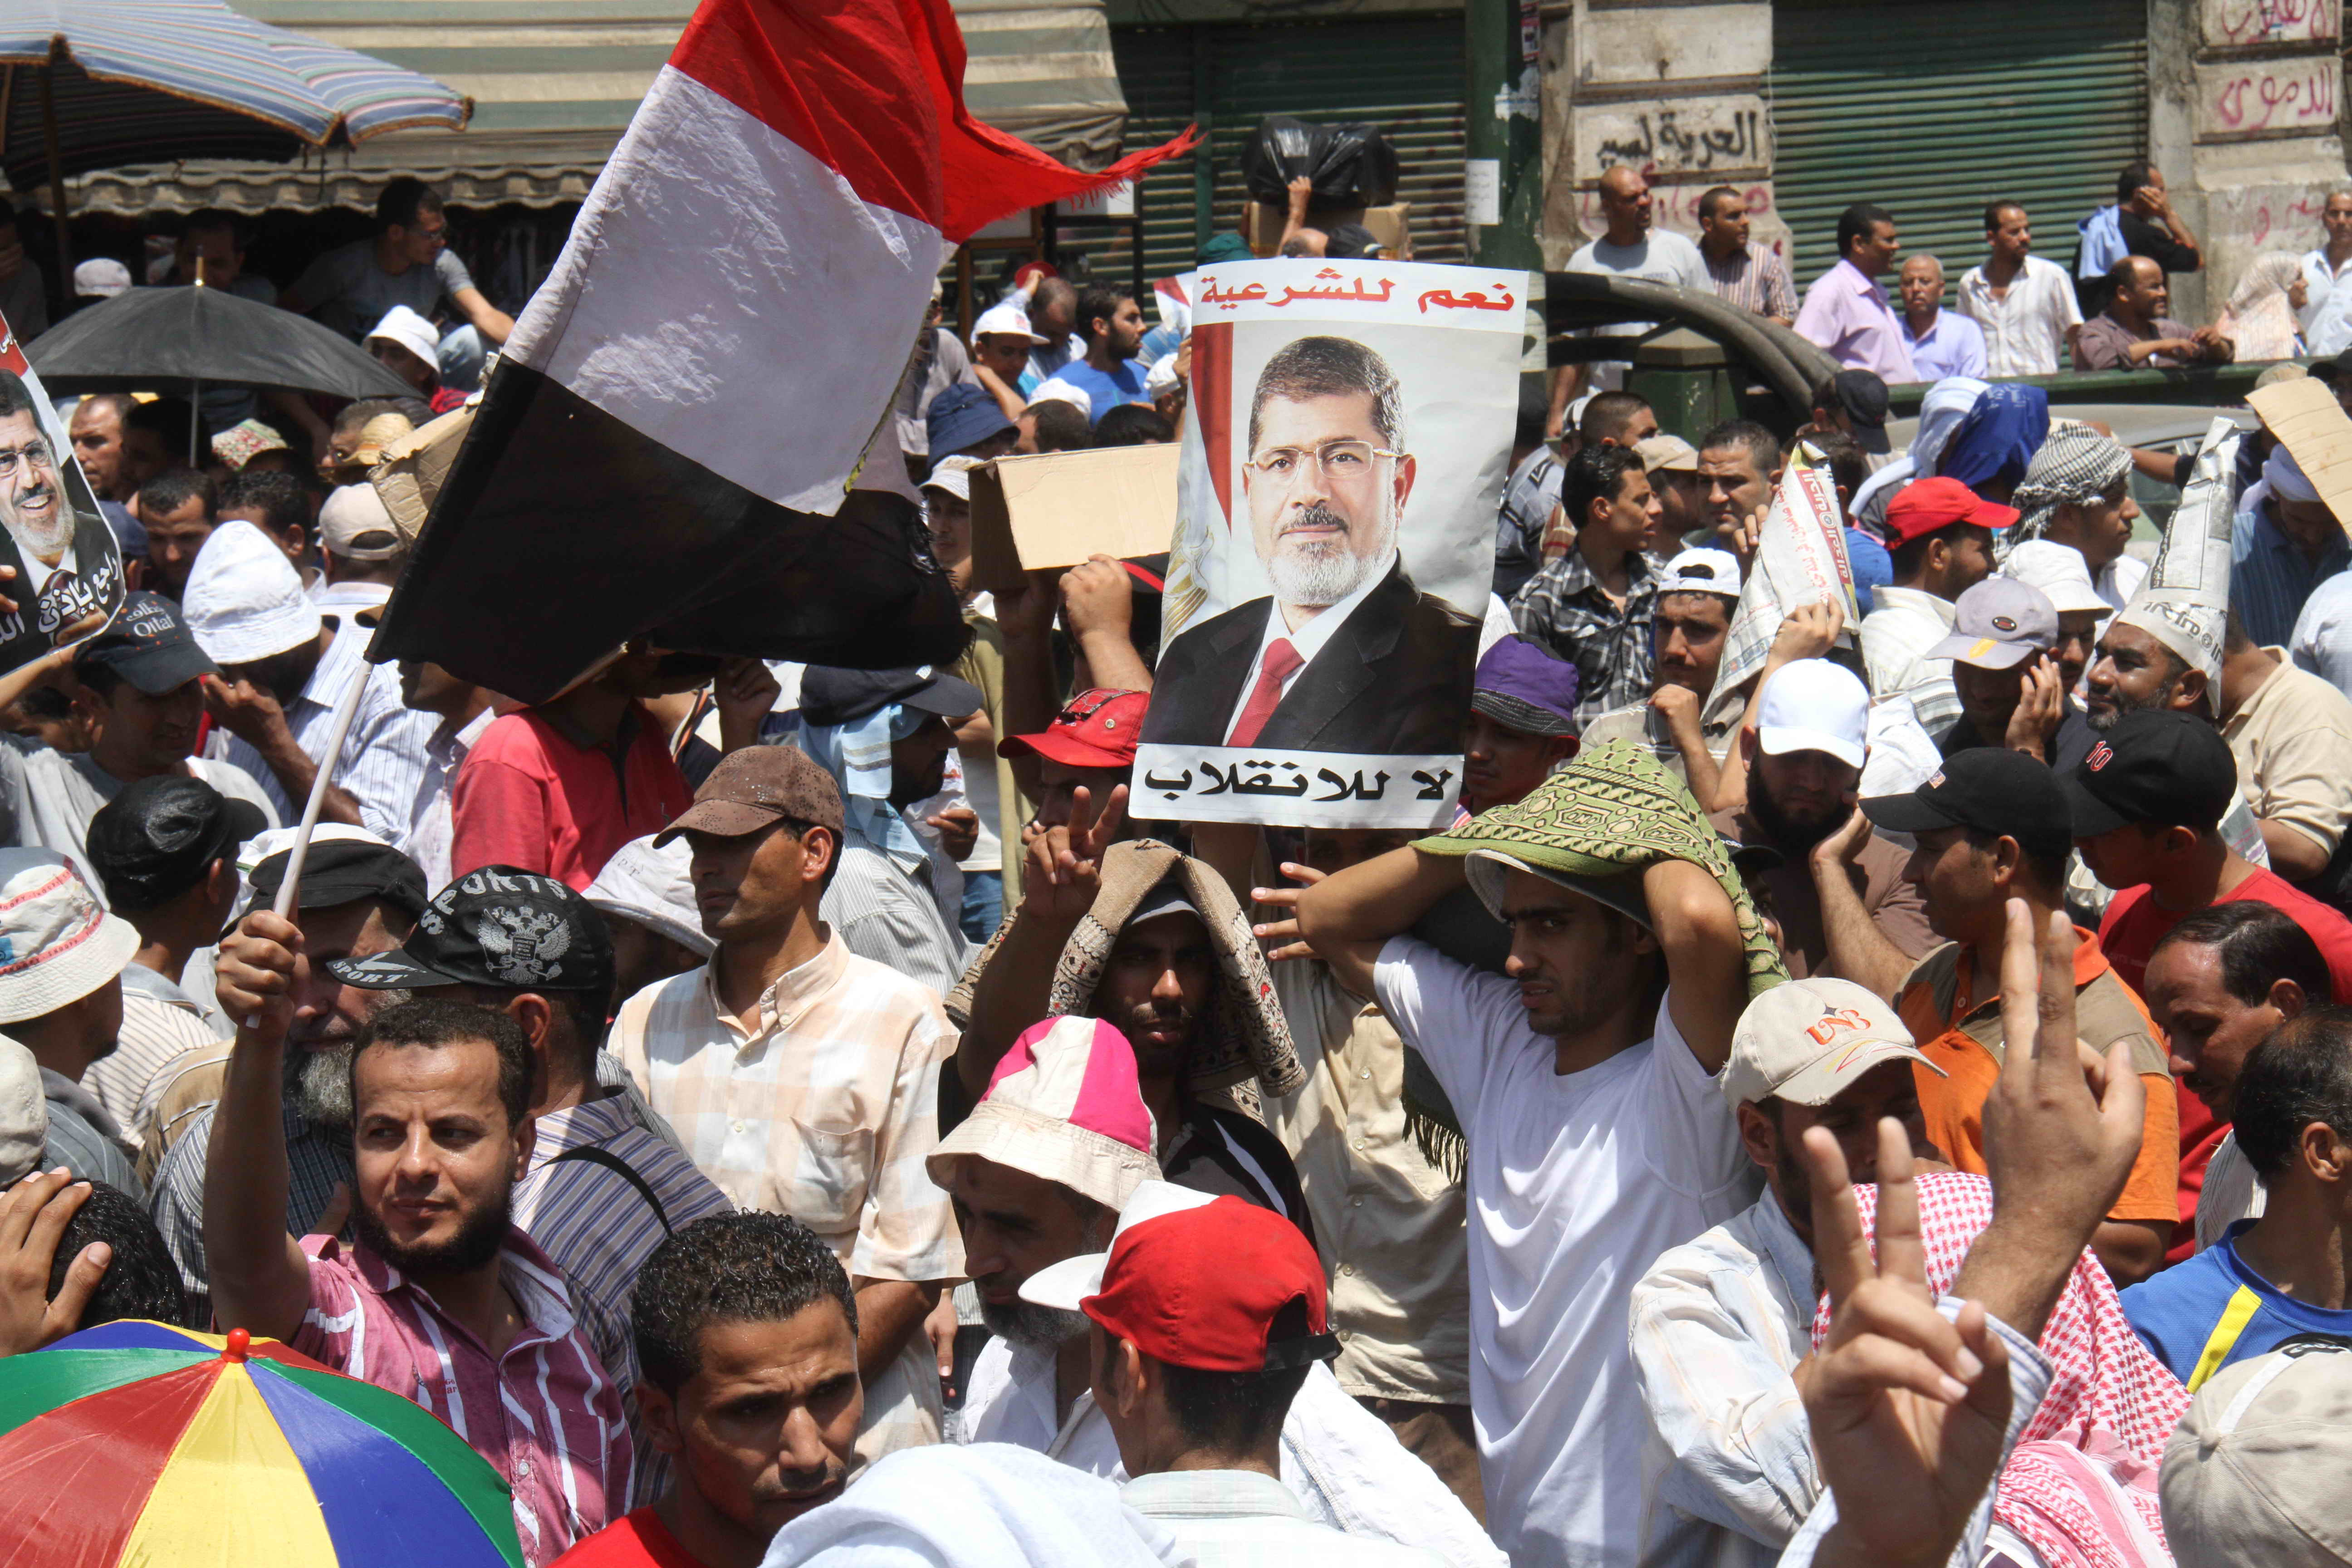 """Thousands of supporters of ousted president Mohamed Morsi marched to Cairo's High Court on Monday, to demand the return of the deposed president, the release of prisoners and in general protest of the """"military coup"""". (Photo by Mohamed Omar)"""